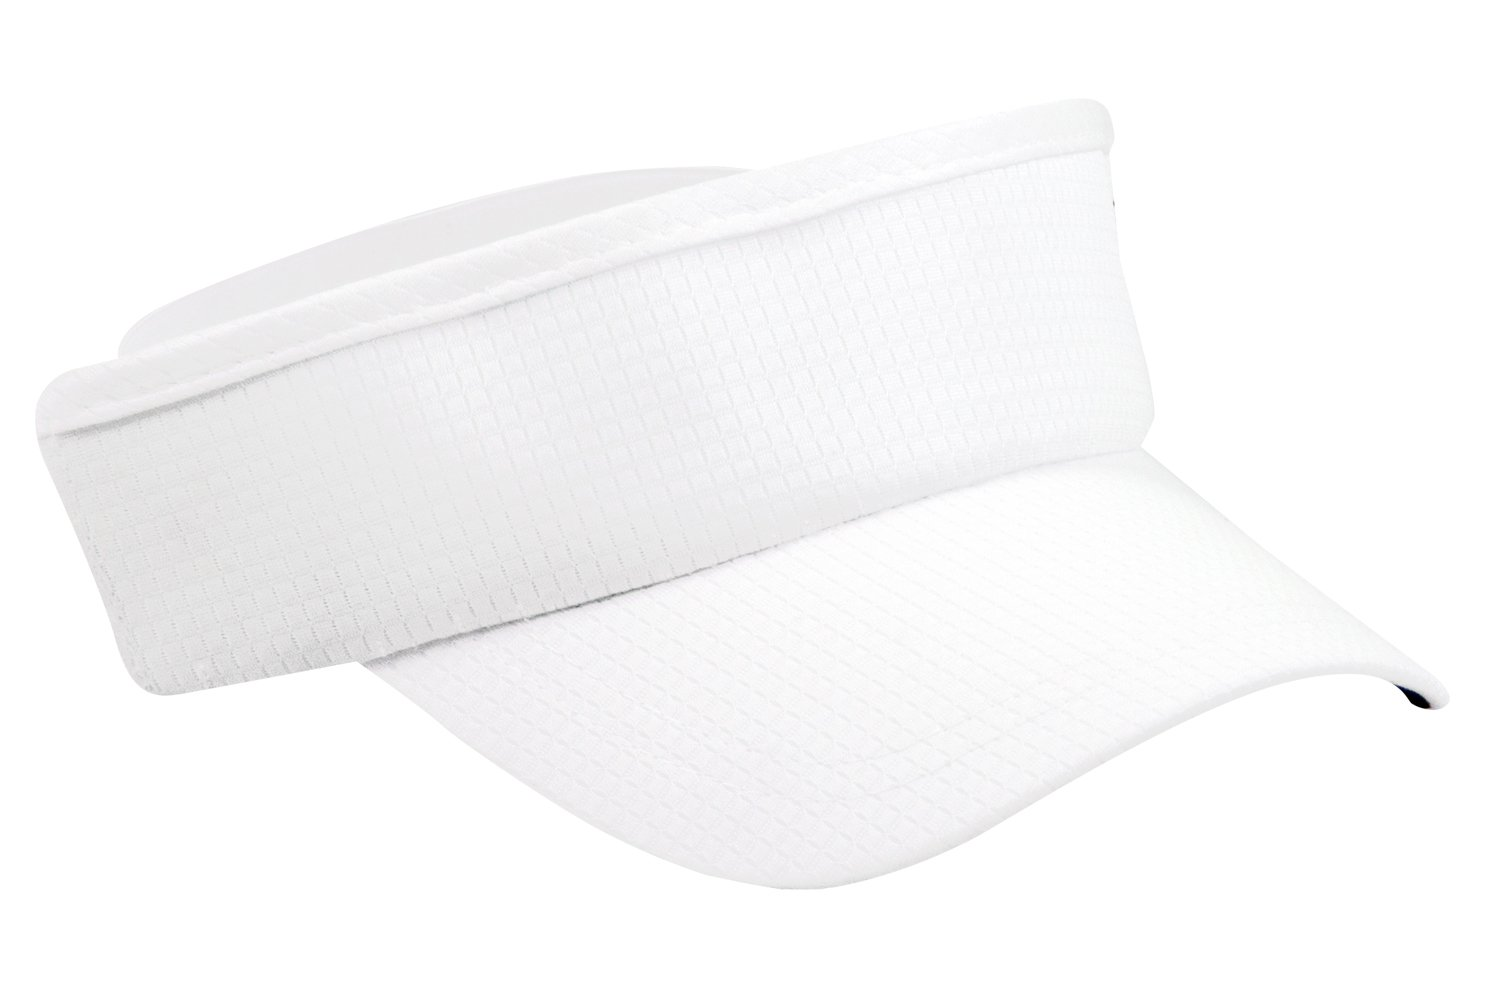 Headsweats Supervisor Sun Visor, White, One Size by Headsweats